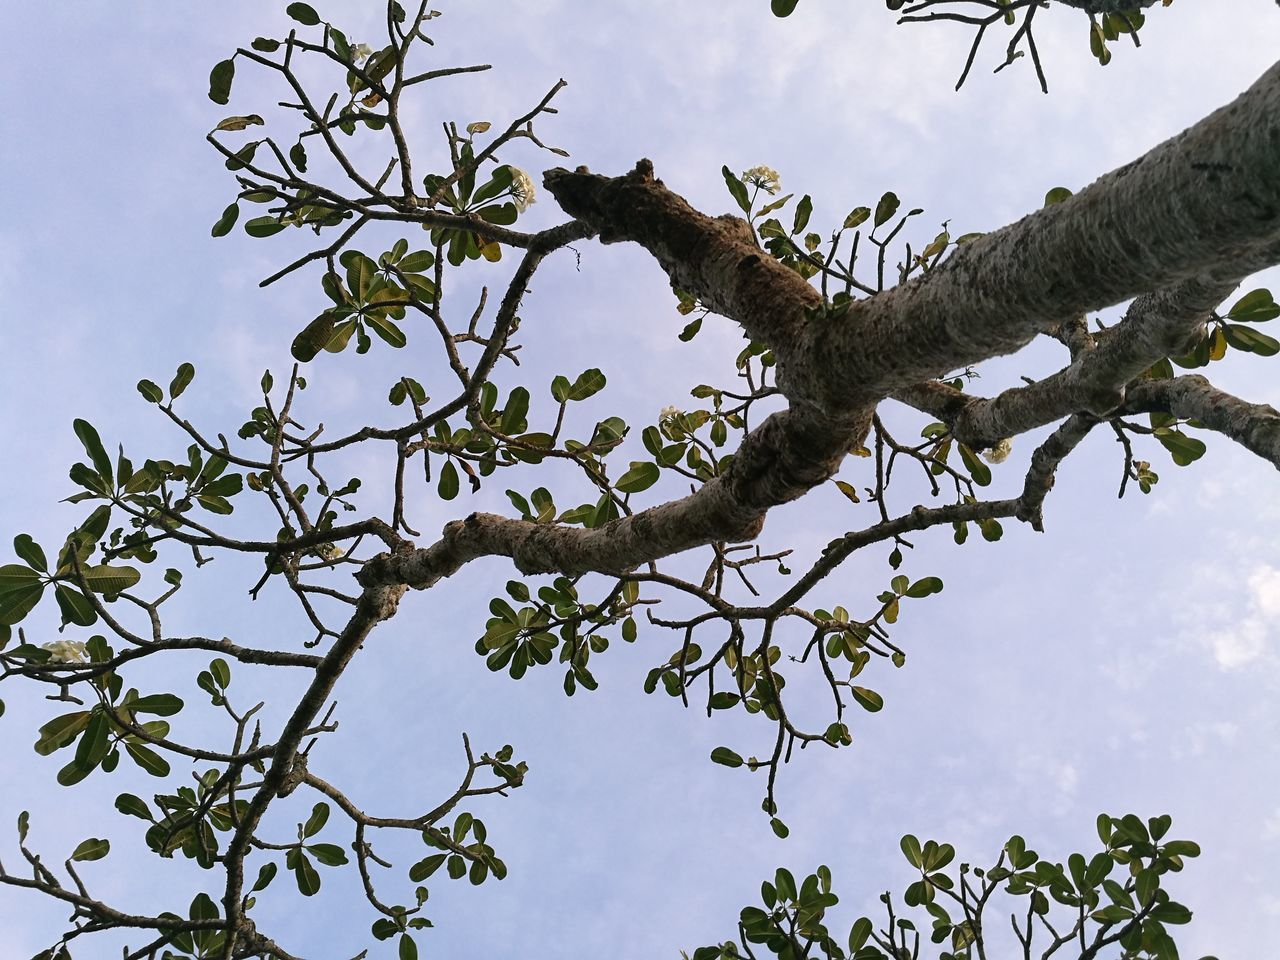 tree, branch, low angle view, day, sky, nature, outdoors, no people, animal themes, animals in the wild, leaf, growth, beauty in nature, perching, bird